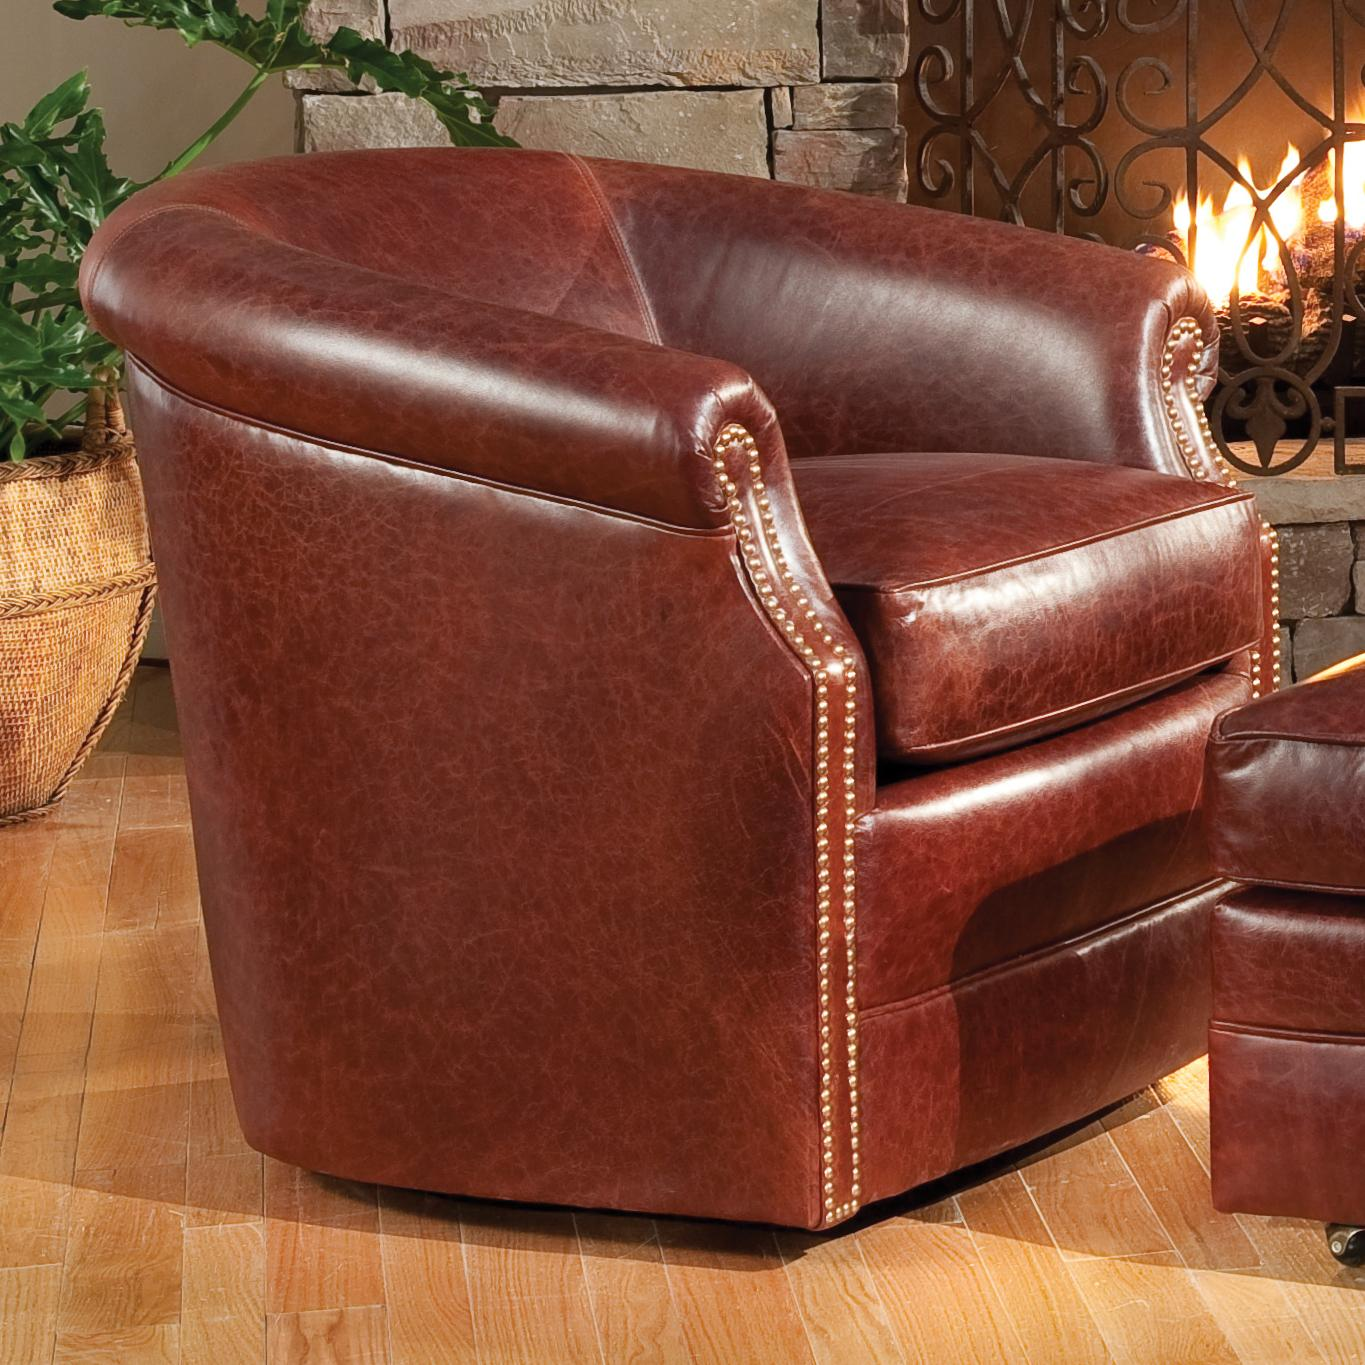 Accent Chairs and Ottomans SB Barrel Swivel Chair by Smith Brothers at Pilgrim Furniture City